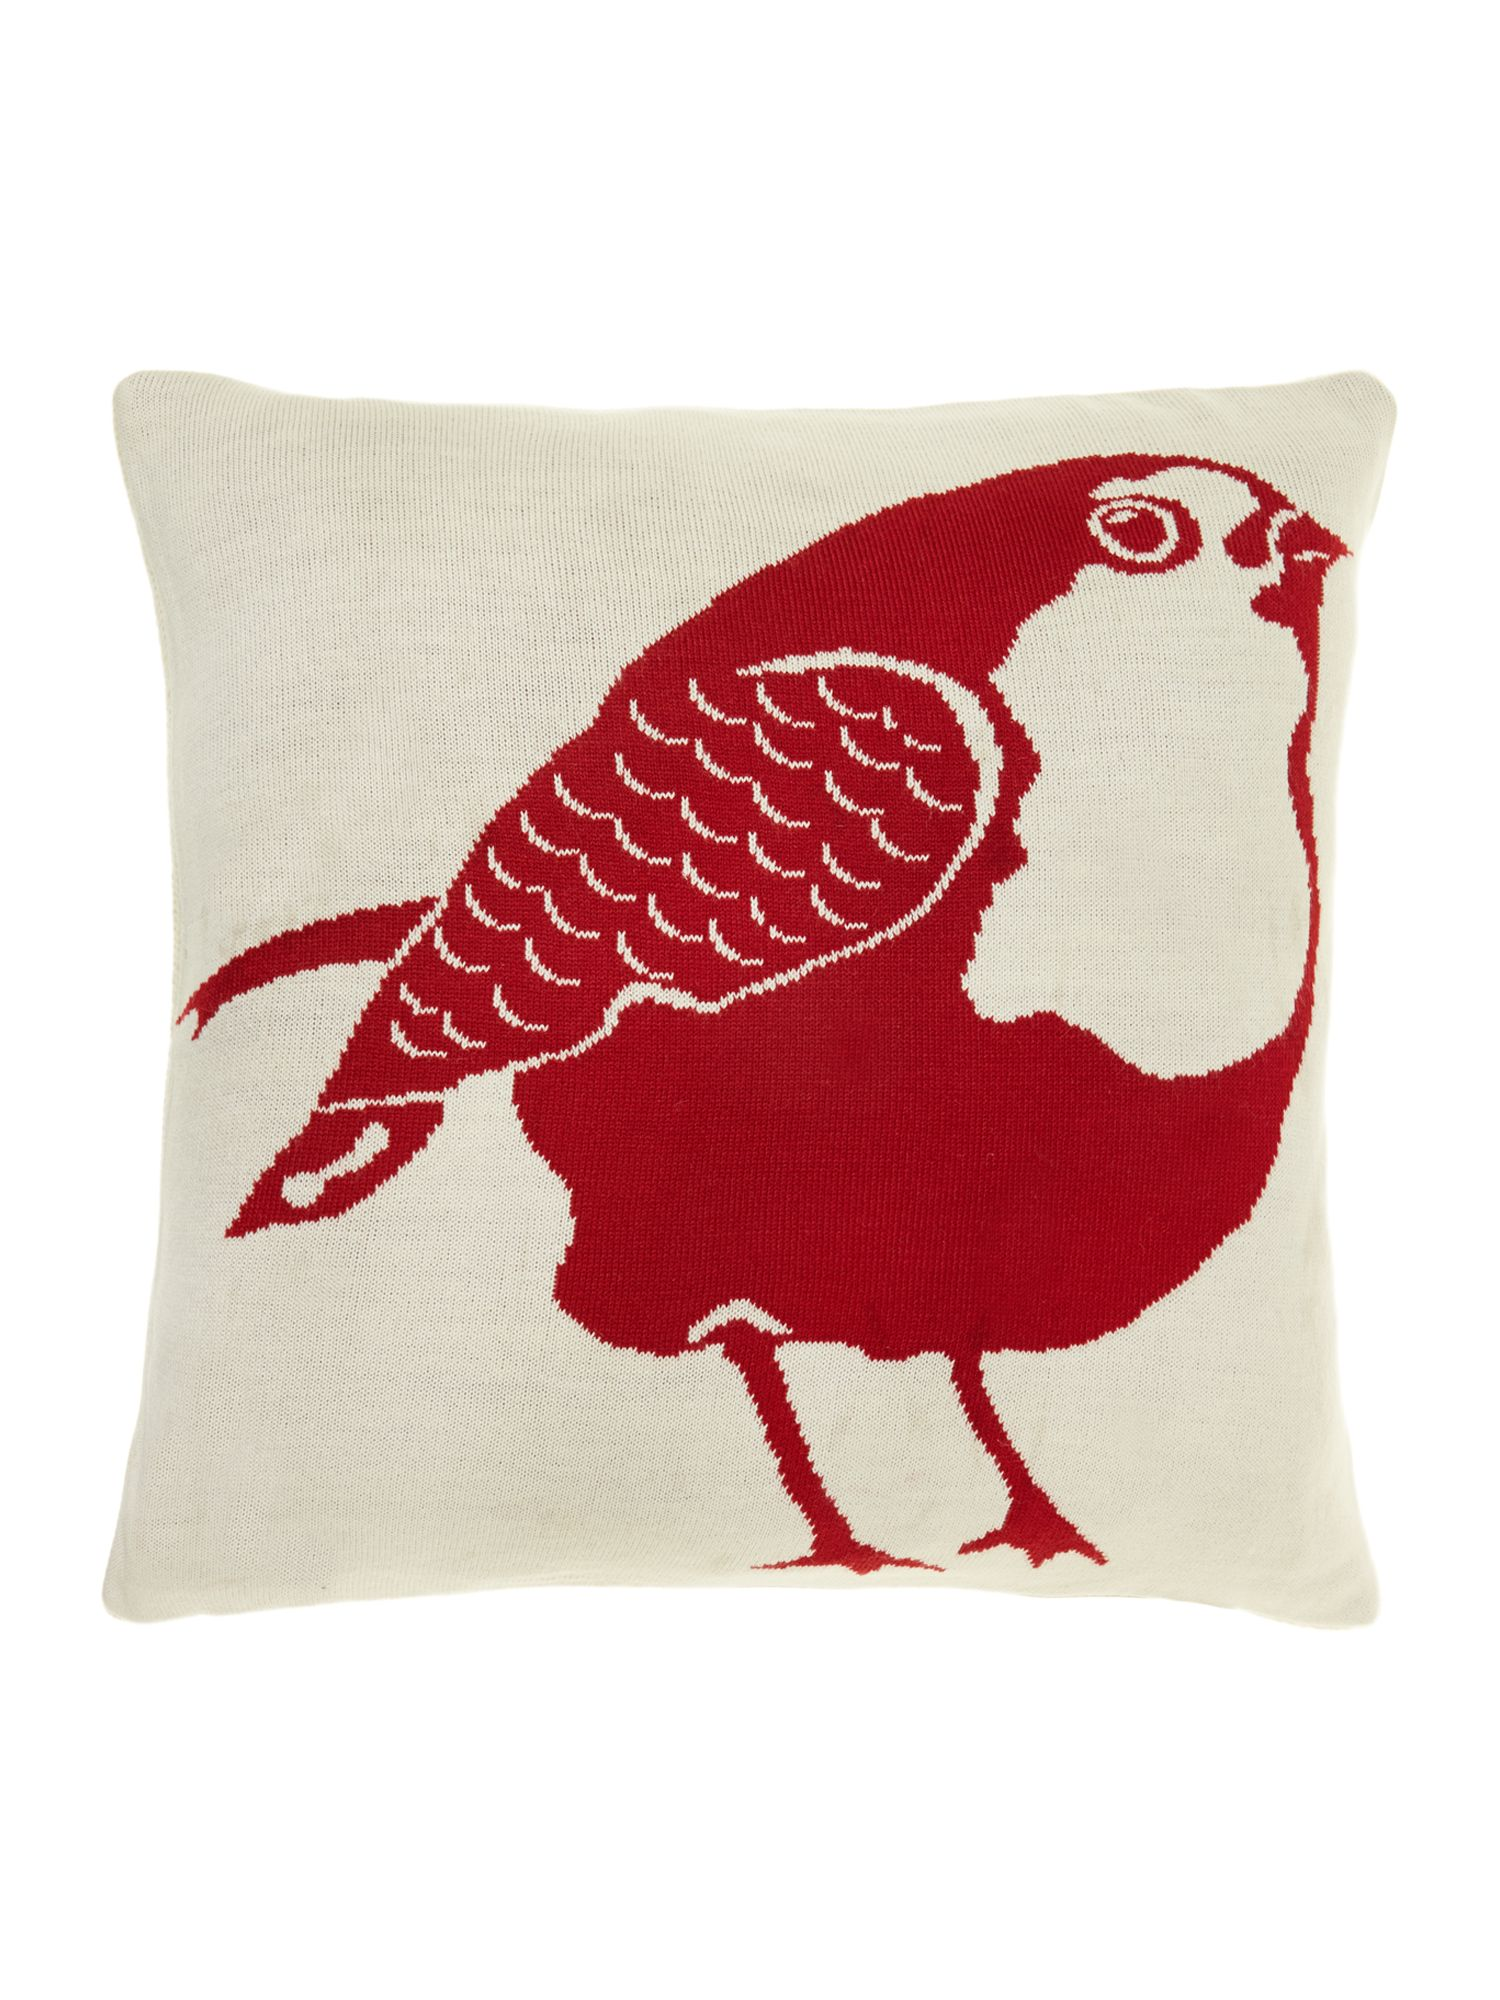 Robin knitted cushion, red